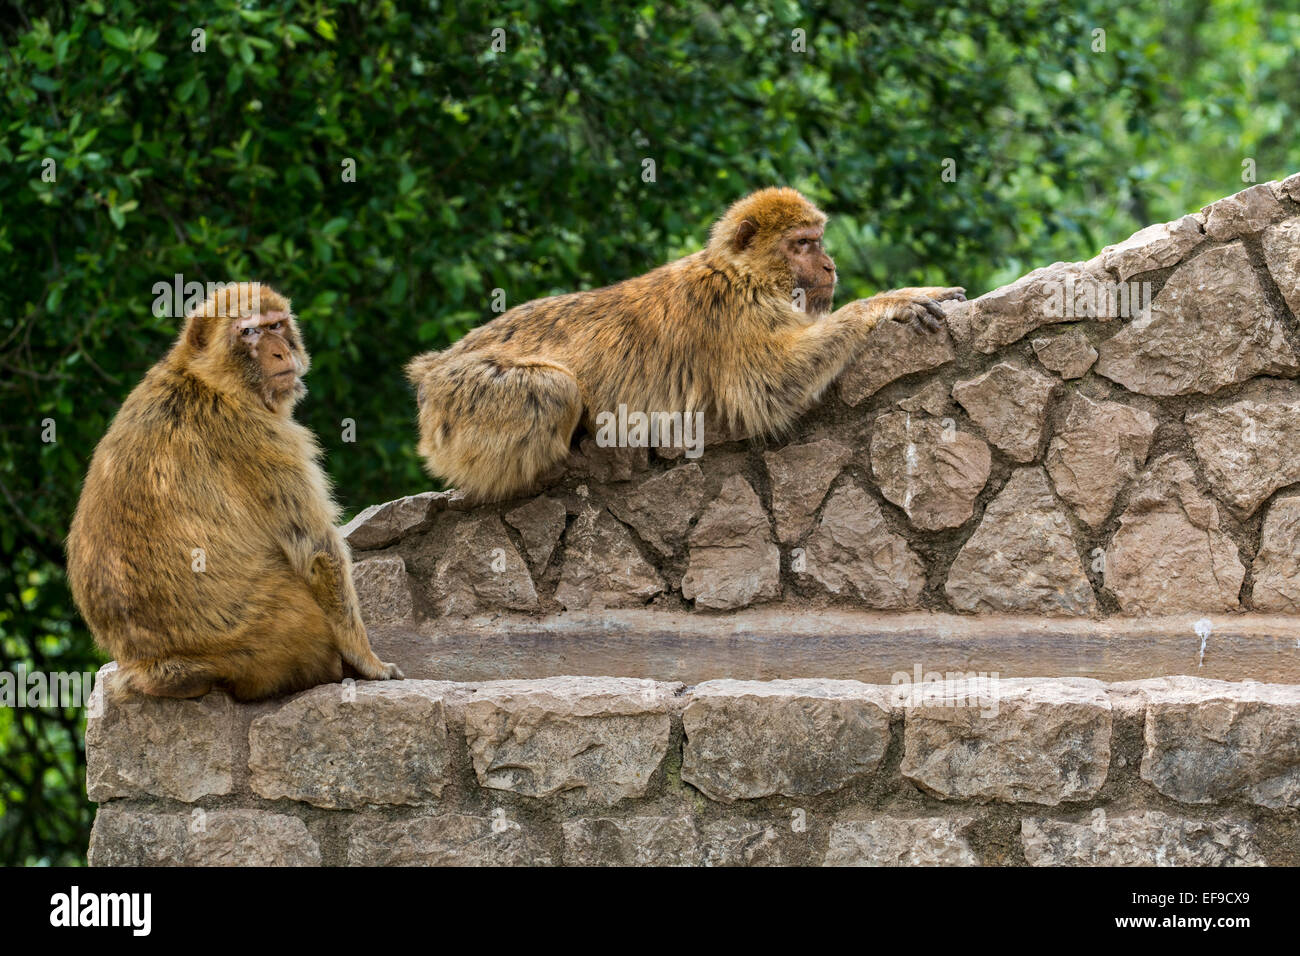 Two Barbary macaques / Barbary apes / magots (Macaca sylvanus) monkey species native to Northern Africa and Gibraltar - Stock Image